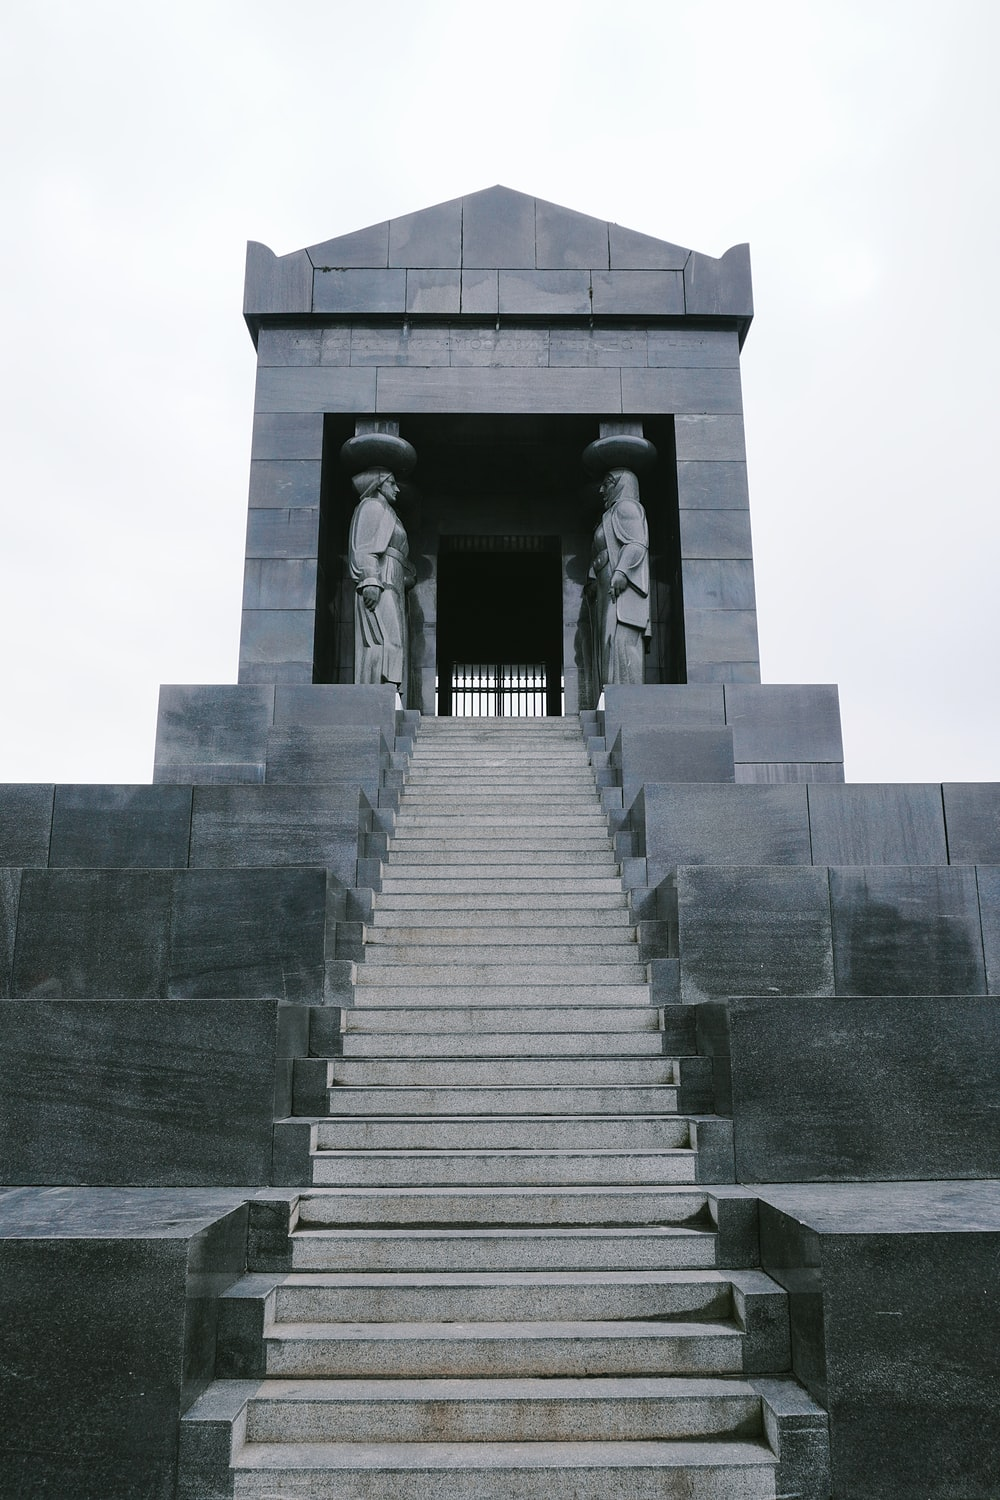 gray concrete stairs with gray concrete railings